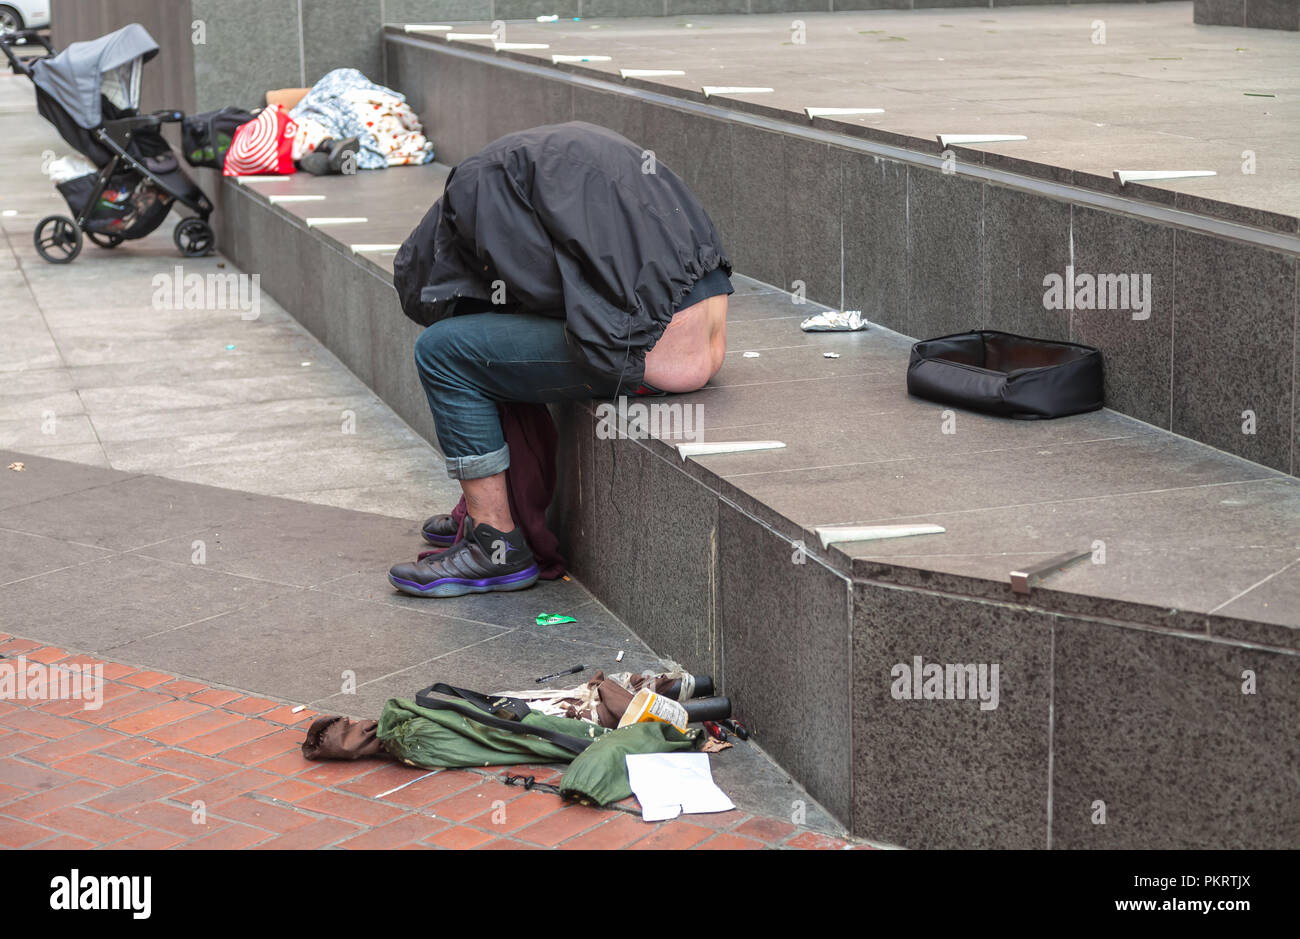 A homeless man sleeps on the street curb in San Francisco, California, United States. - Stock Image